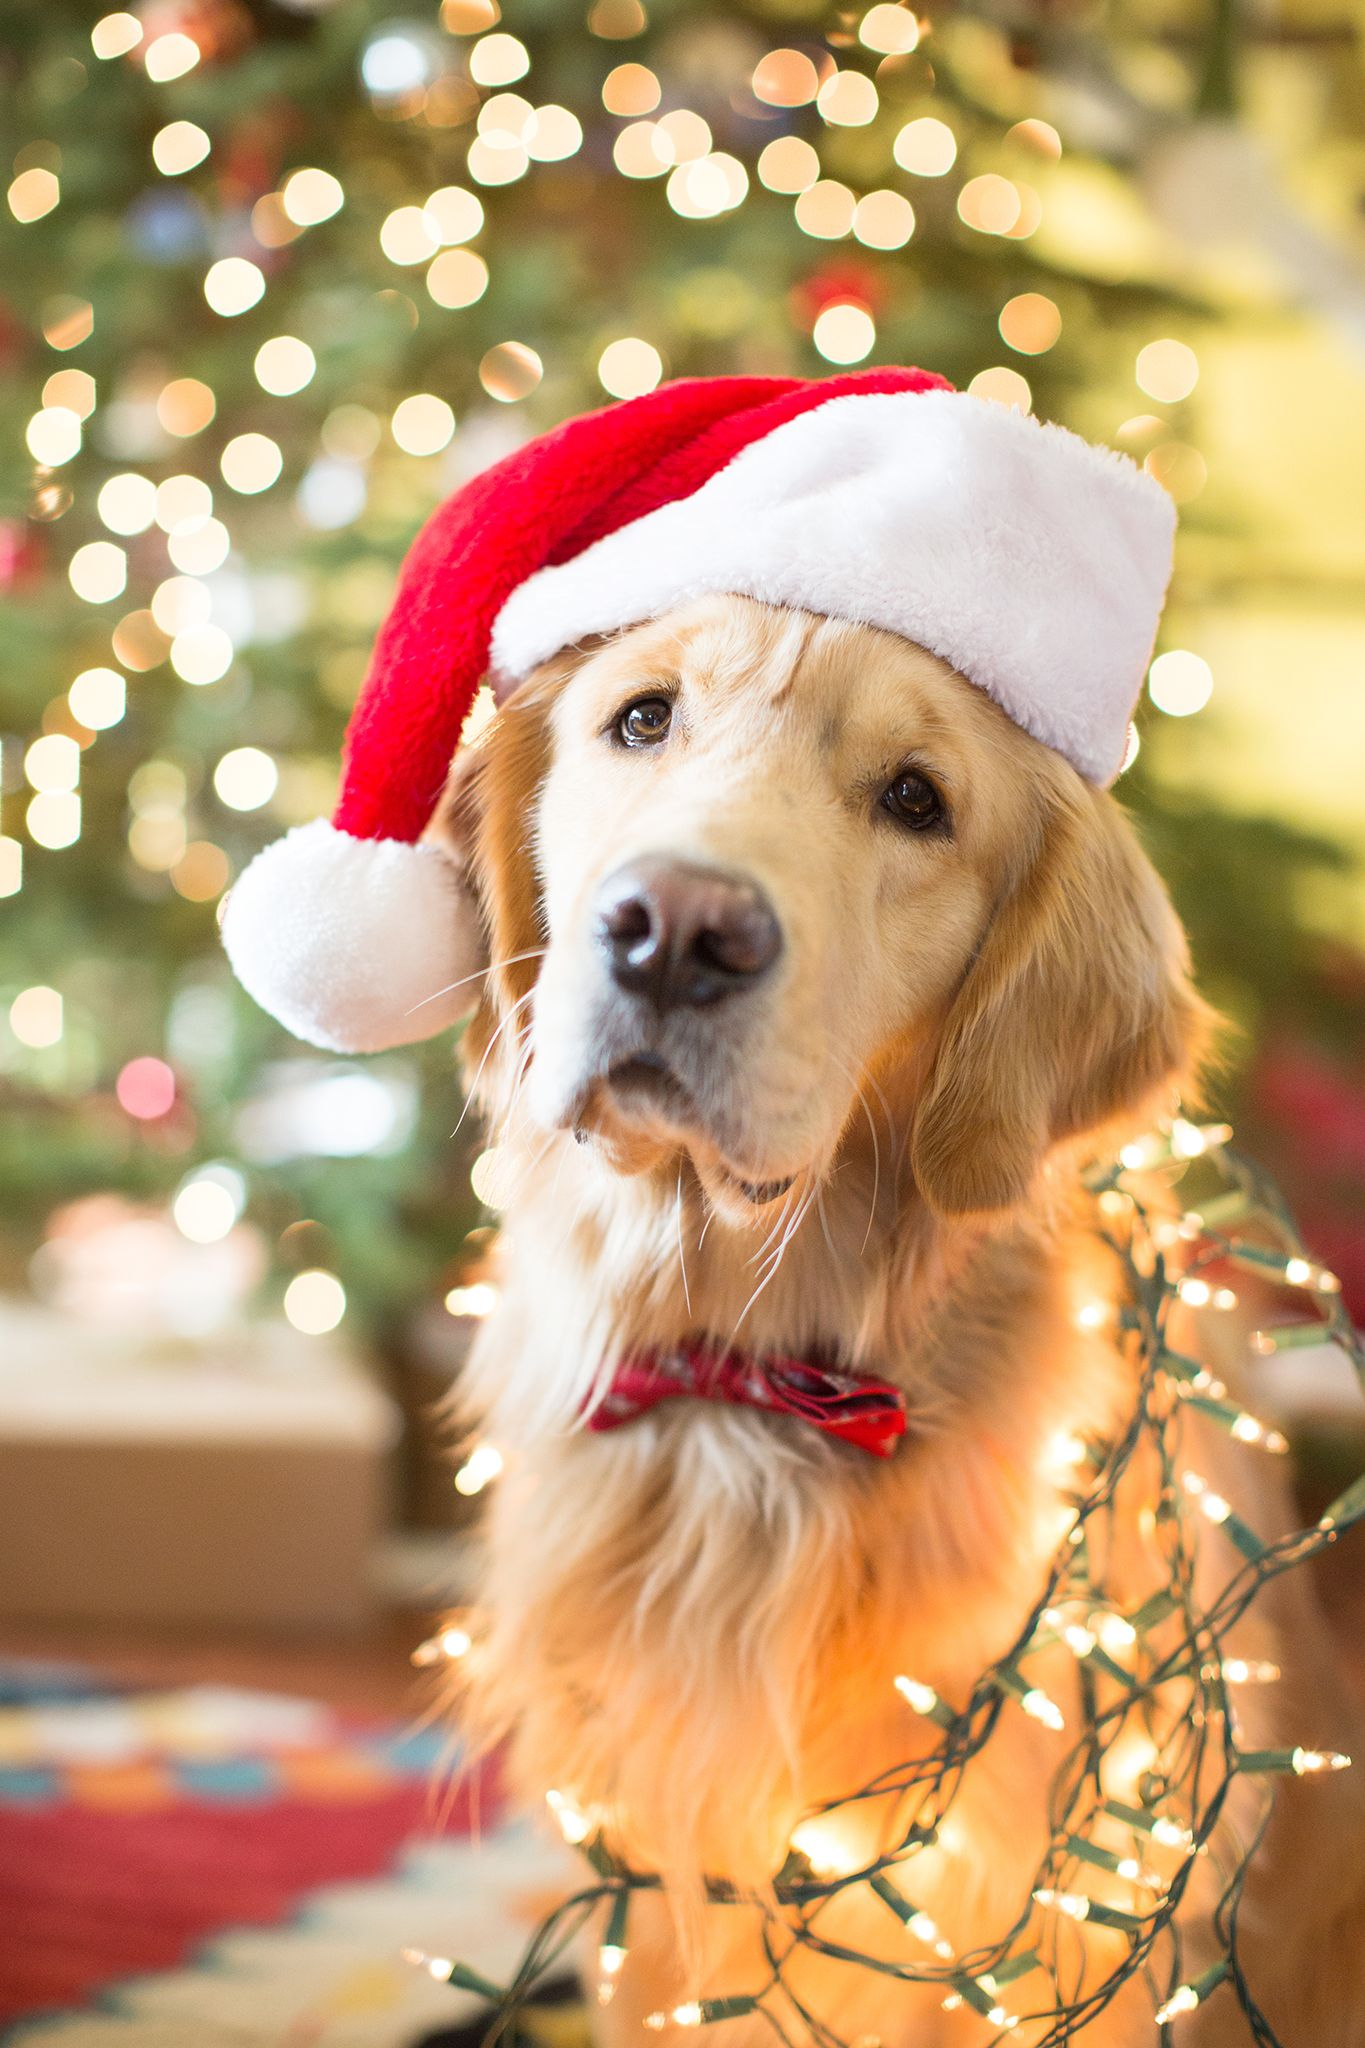 Golden Retriever Christmas Golden Retriever Christmas Dog